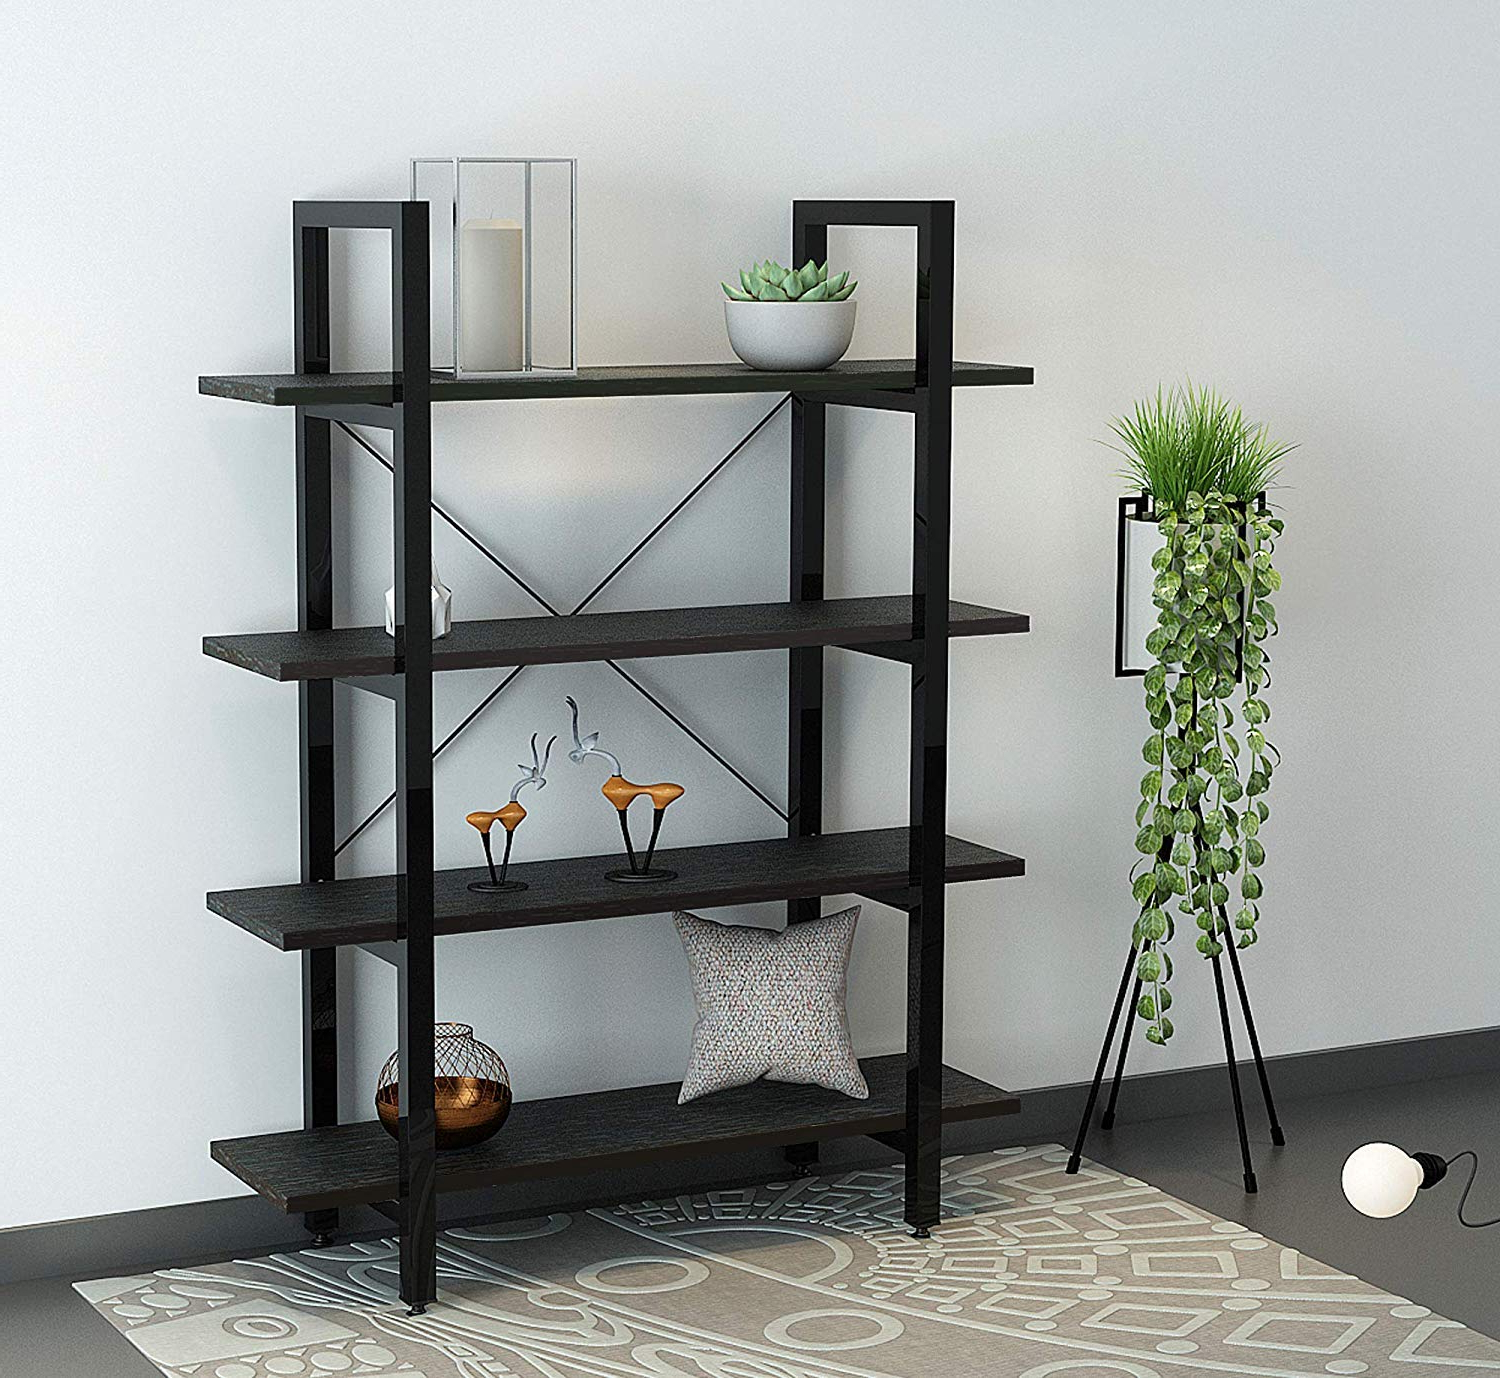 Parker Modern Etagere Bookcases With Regard To 2020 Oraf Bookshelf 4 Tiers Bookcase Wood And Metal Industrial Bookshelf,  Vintage Bookshelf Easy Assembly Display Shelf For Living Room, Bedroom,  Office, (View 11 of 20)